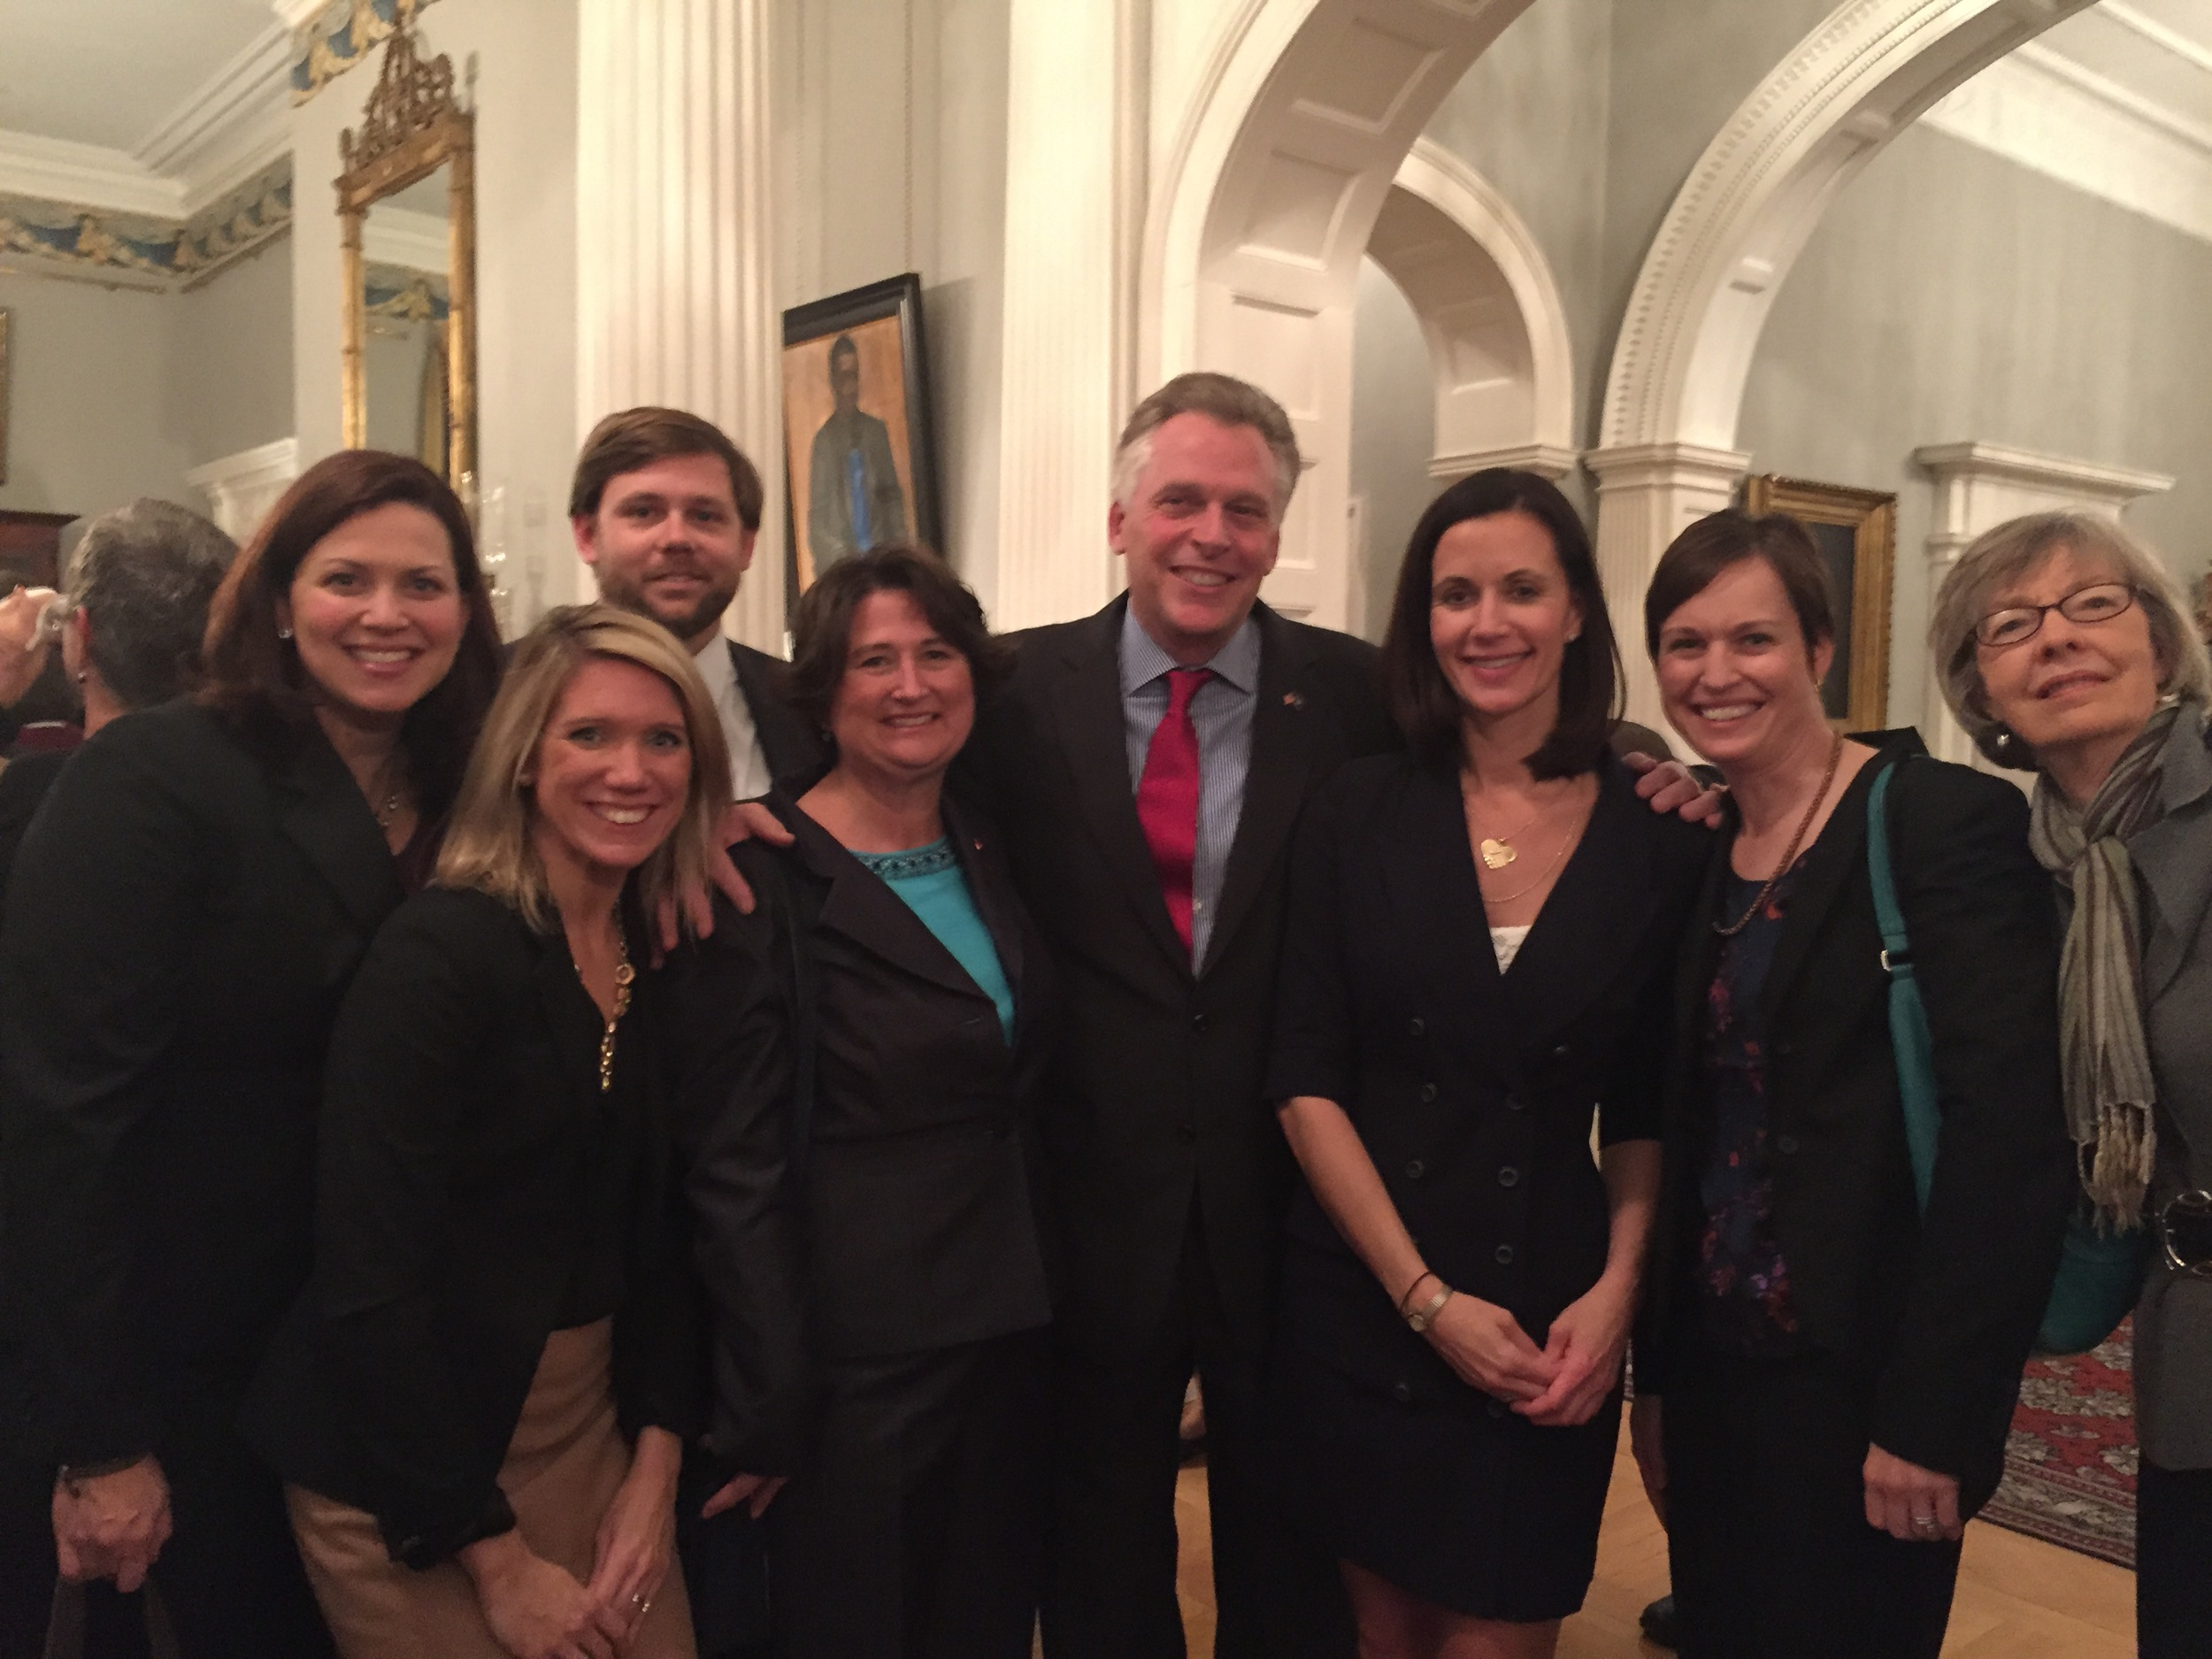 Reception with Virginia Governor Terry McAuliffe (D) and VAND members.